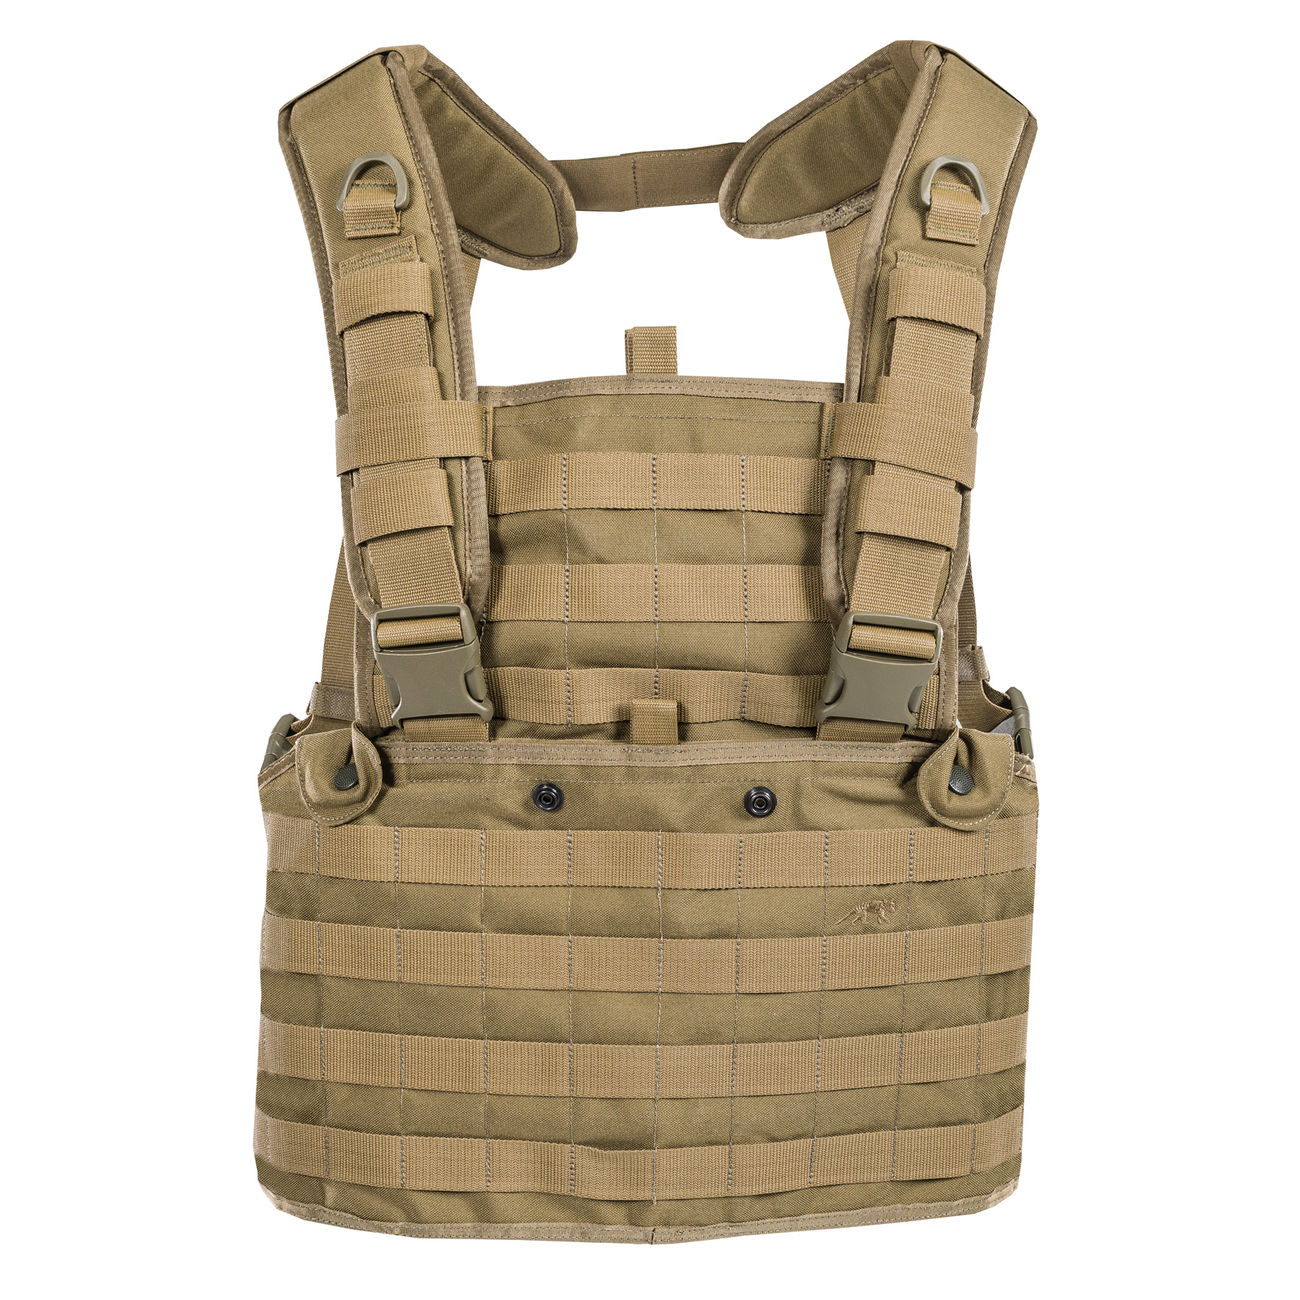 TT Chest Rig Modular coyote brown 1